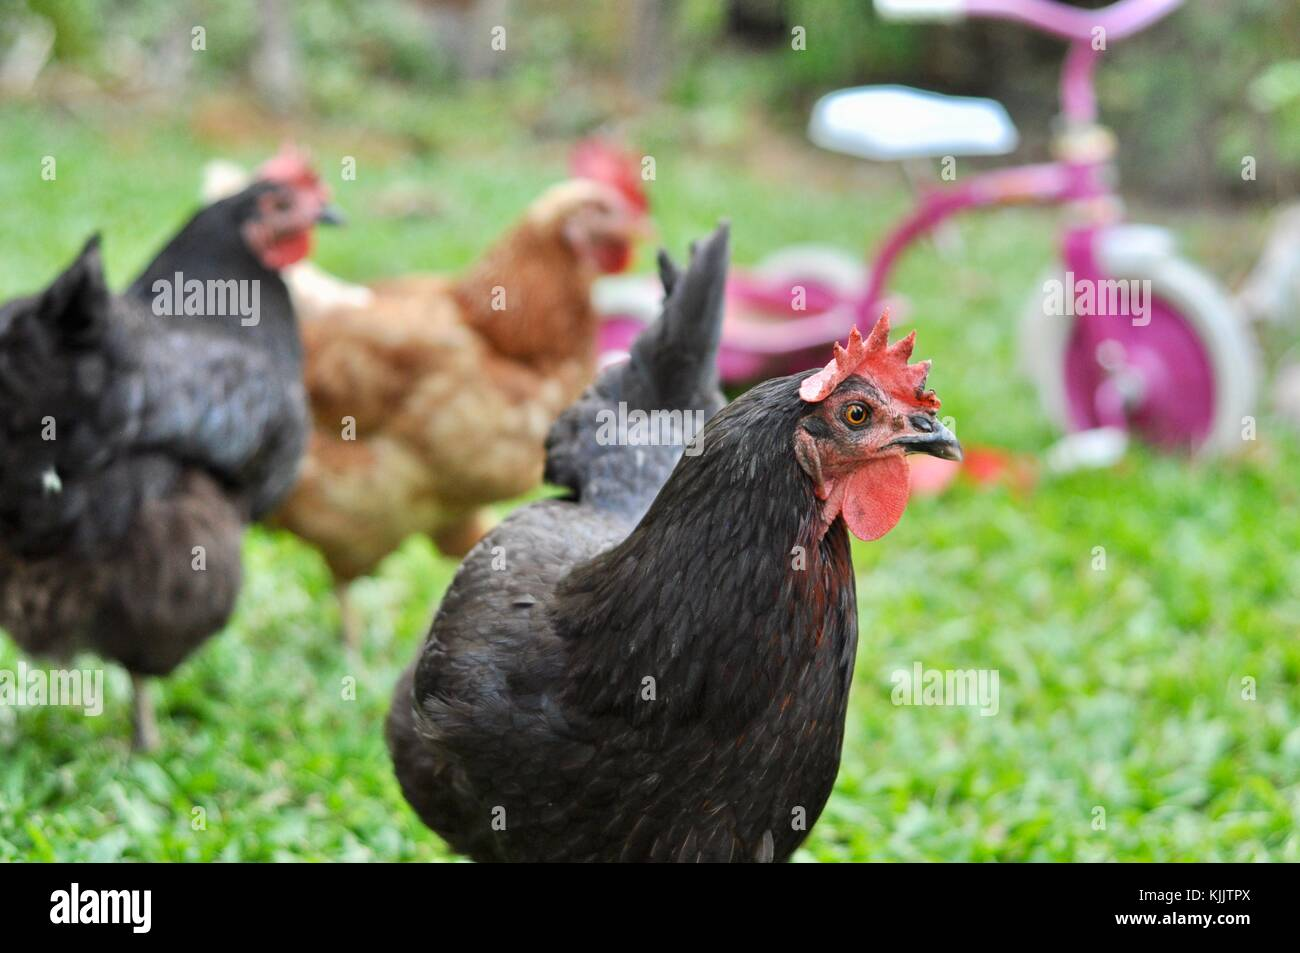 Domestic chickens in a suburban backyard, Sustainable living, Townsville, Queensland, Australia Stock Photo